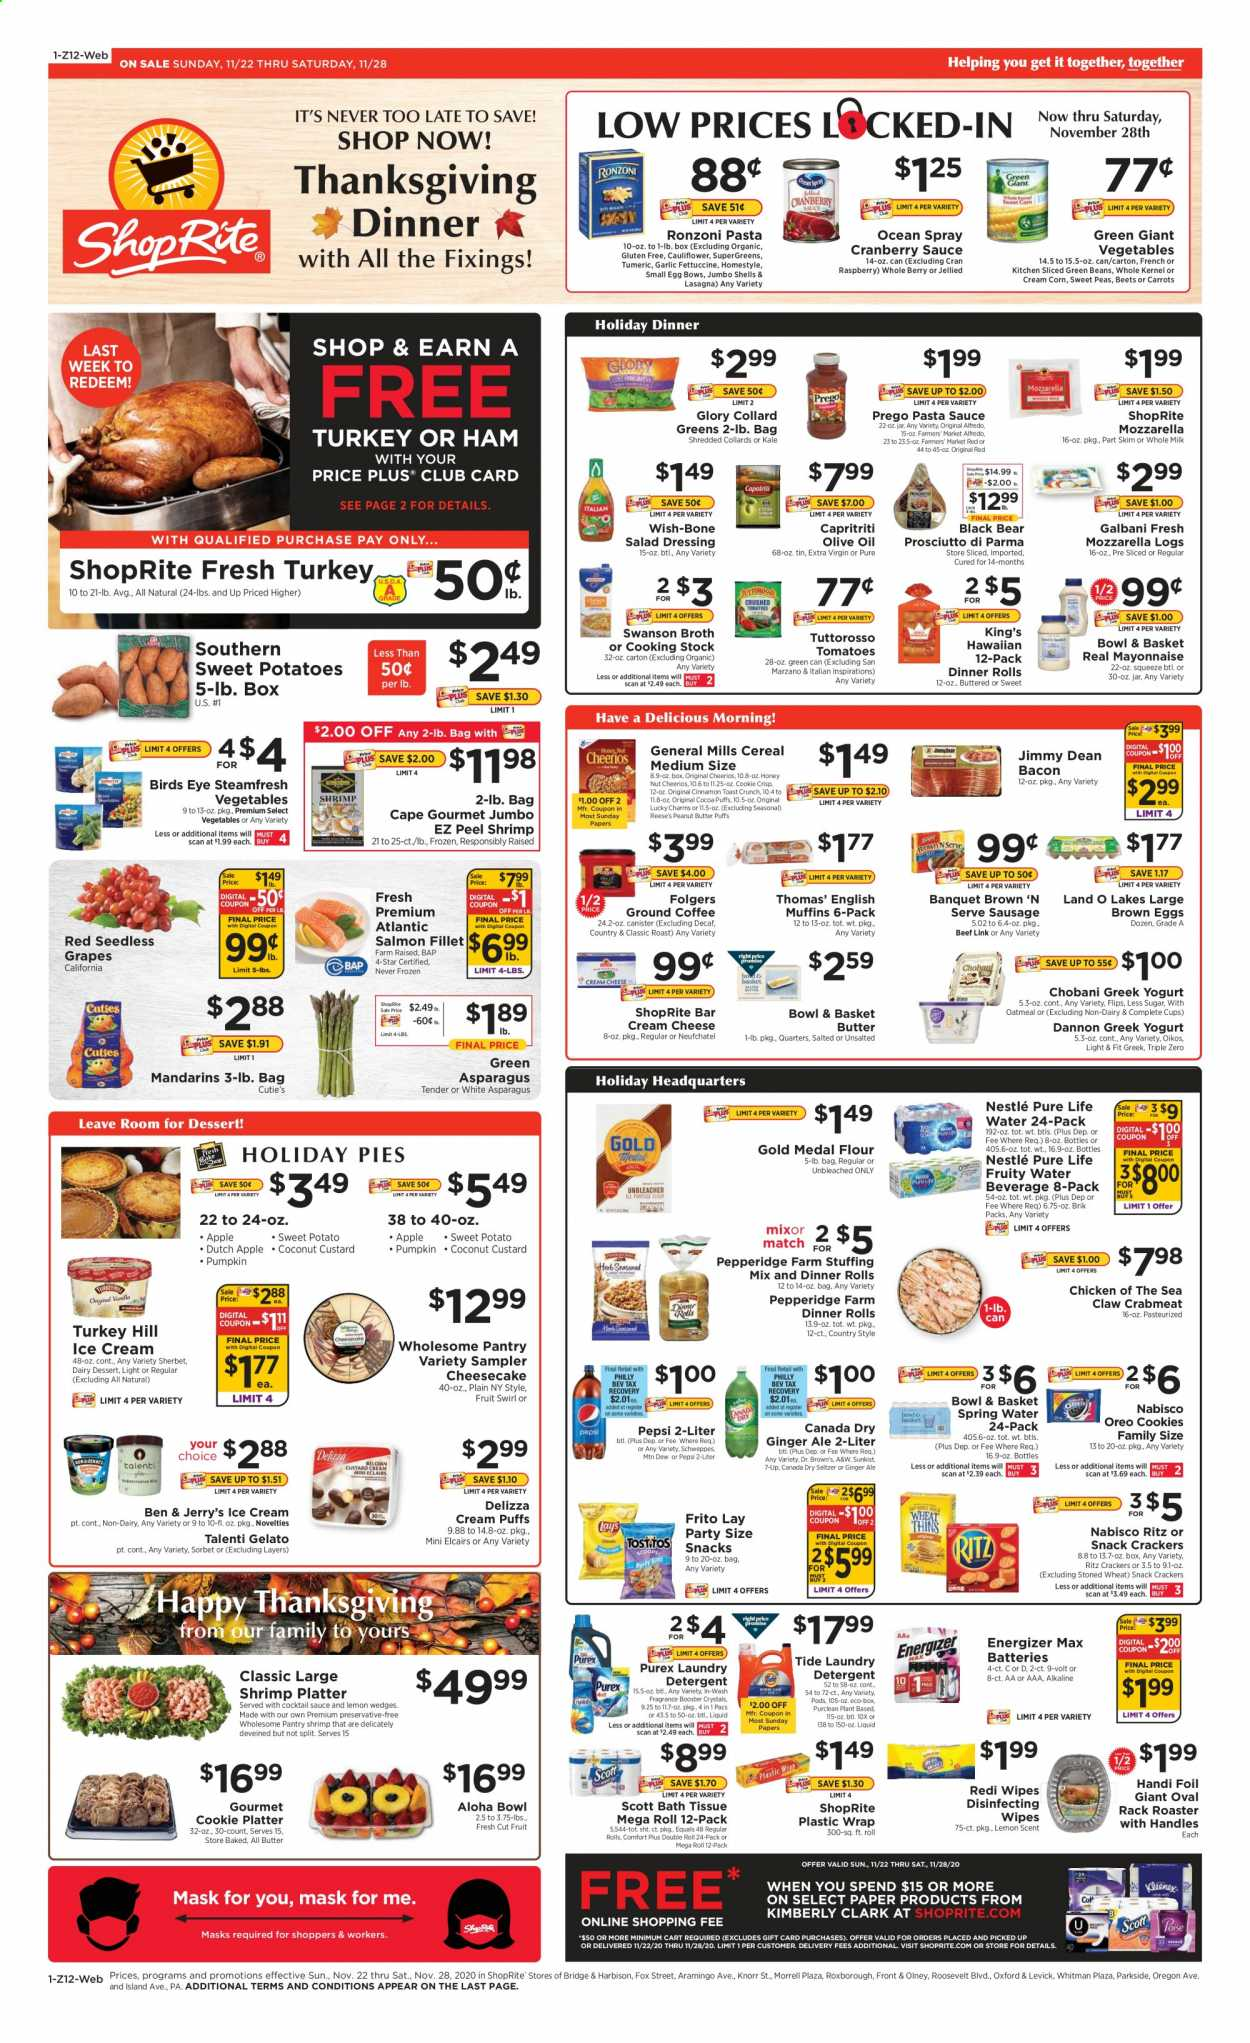 ShopRite Flyer - 11.22.2020 - 11.28.2020 - Sales products - alfredo sauce, apples, asparagus, bacon, basket, bath tissue, battery, beans, beef meat, box, brown 'n serve sausages, Canada Dry, carrots, cart, cauliflower, cereals, cocktail sauce, cocoa, cookies, corn, cranberry sauce, cream cheese, custard, detergent, eggs, Energizer, collard, extra virgin olive oil, flour, fragrance, frozen, garlic, ginger, ginger ale, grapes, greek yogurt, green beans, mask, mayonnaise, milk, mozzarella, Nestlé, neufchatel, salad dressing, salmon, salmon fillet, sausage, scott, seedless grapes, seltzer, Schweppes, spring water, sweet potatoes, Tide, tomatoes, turkey, wipes, ham, handles, honey, ice cream, jar, kale, Kitchen, potatoes, prosciutto, pumpkin, cheerios, chicken, pasta sauce, peanut butter, peas, Pepsi, oatmeal, olive oil, Oreo, cheesecake, cheese, coconut, dressing, Vegetables, snack, sherbet, pasta, berry, AVG, reese, Knorr, canister, salad, sauce, platter, Fruit, laundry detergent, Folgers, lemon, Apple, shrimps, vegetable, spring. Page 1.